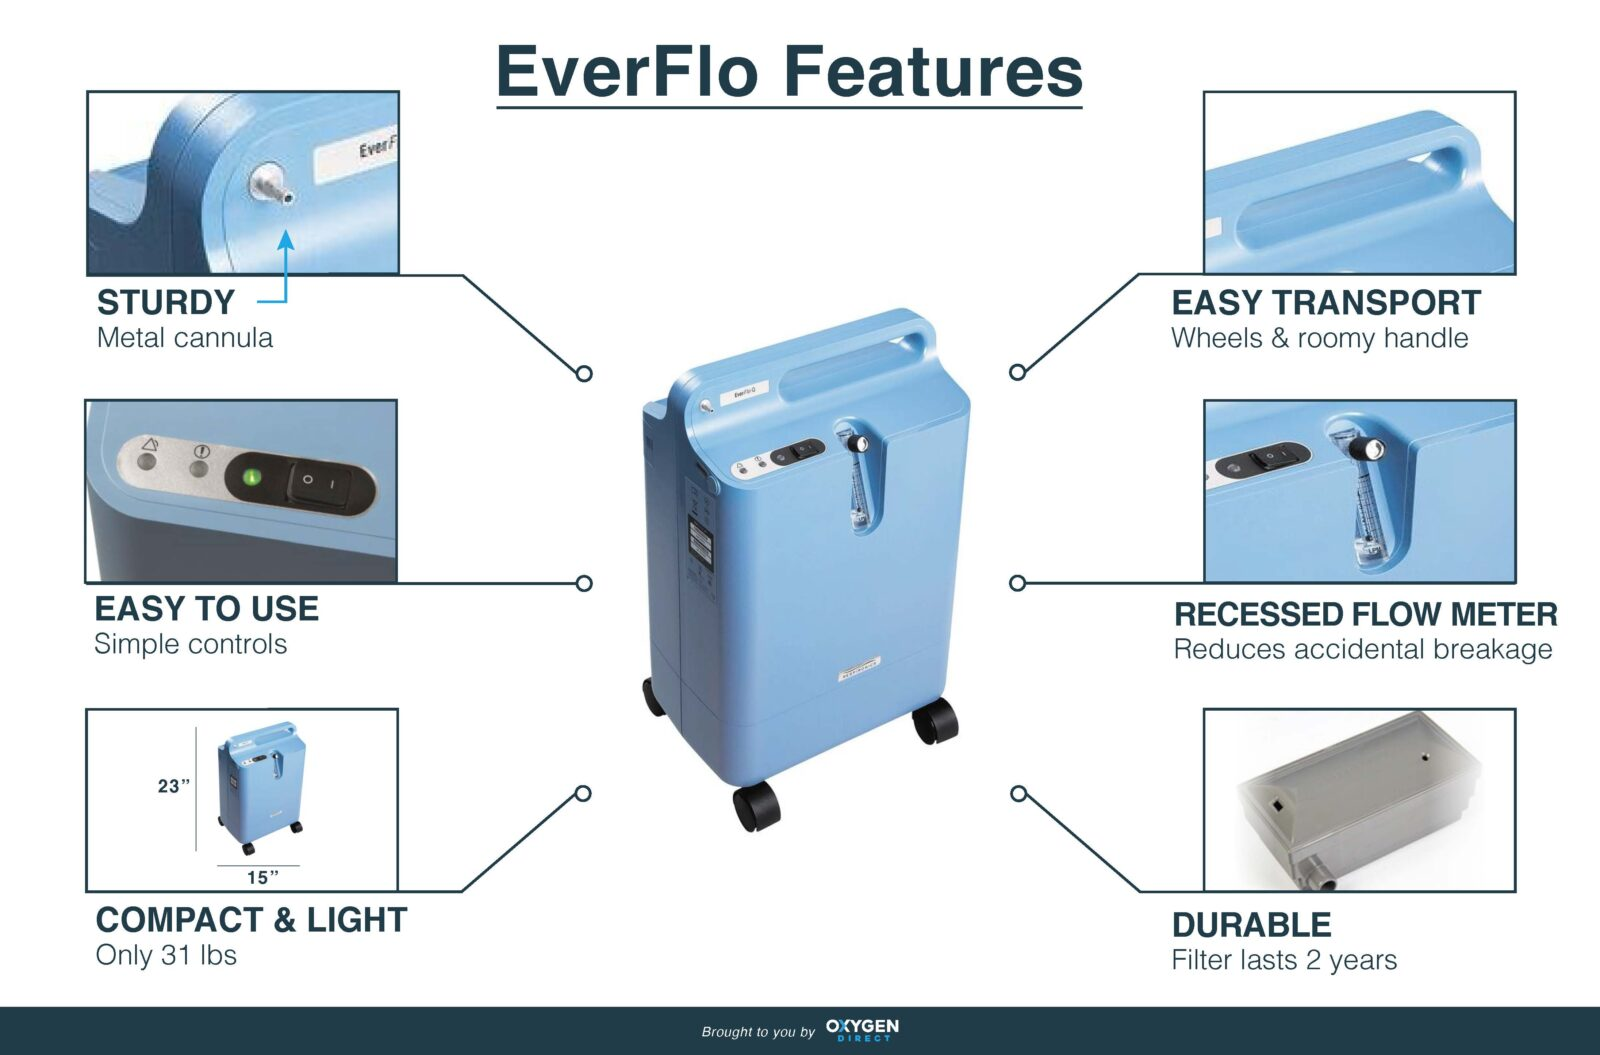 EverFlo Features